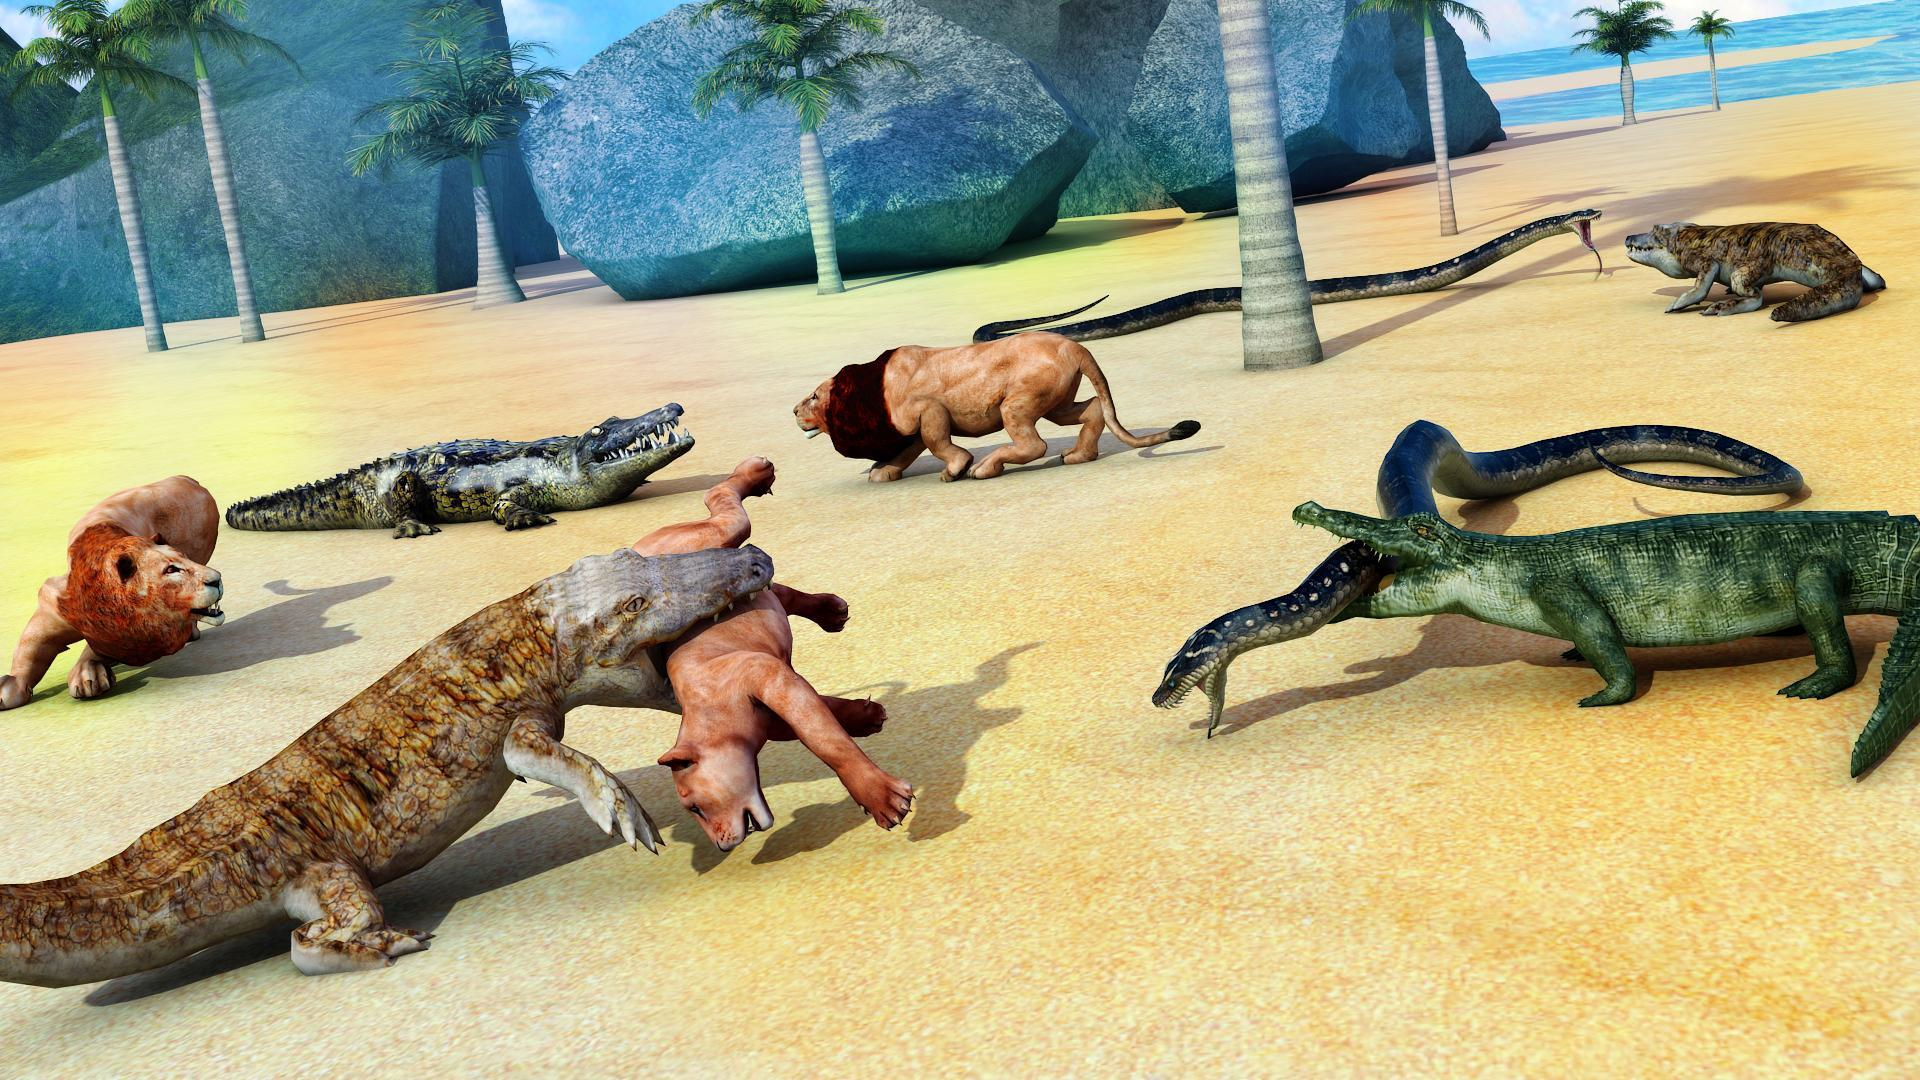 Animal Attack Simulator -Wild Hunting Games 1.0.37 Screenshot 5